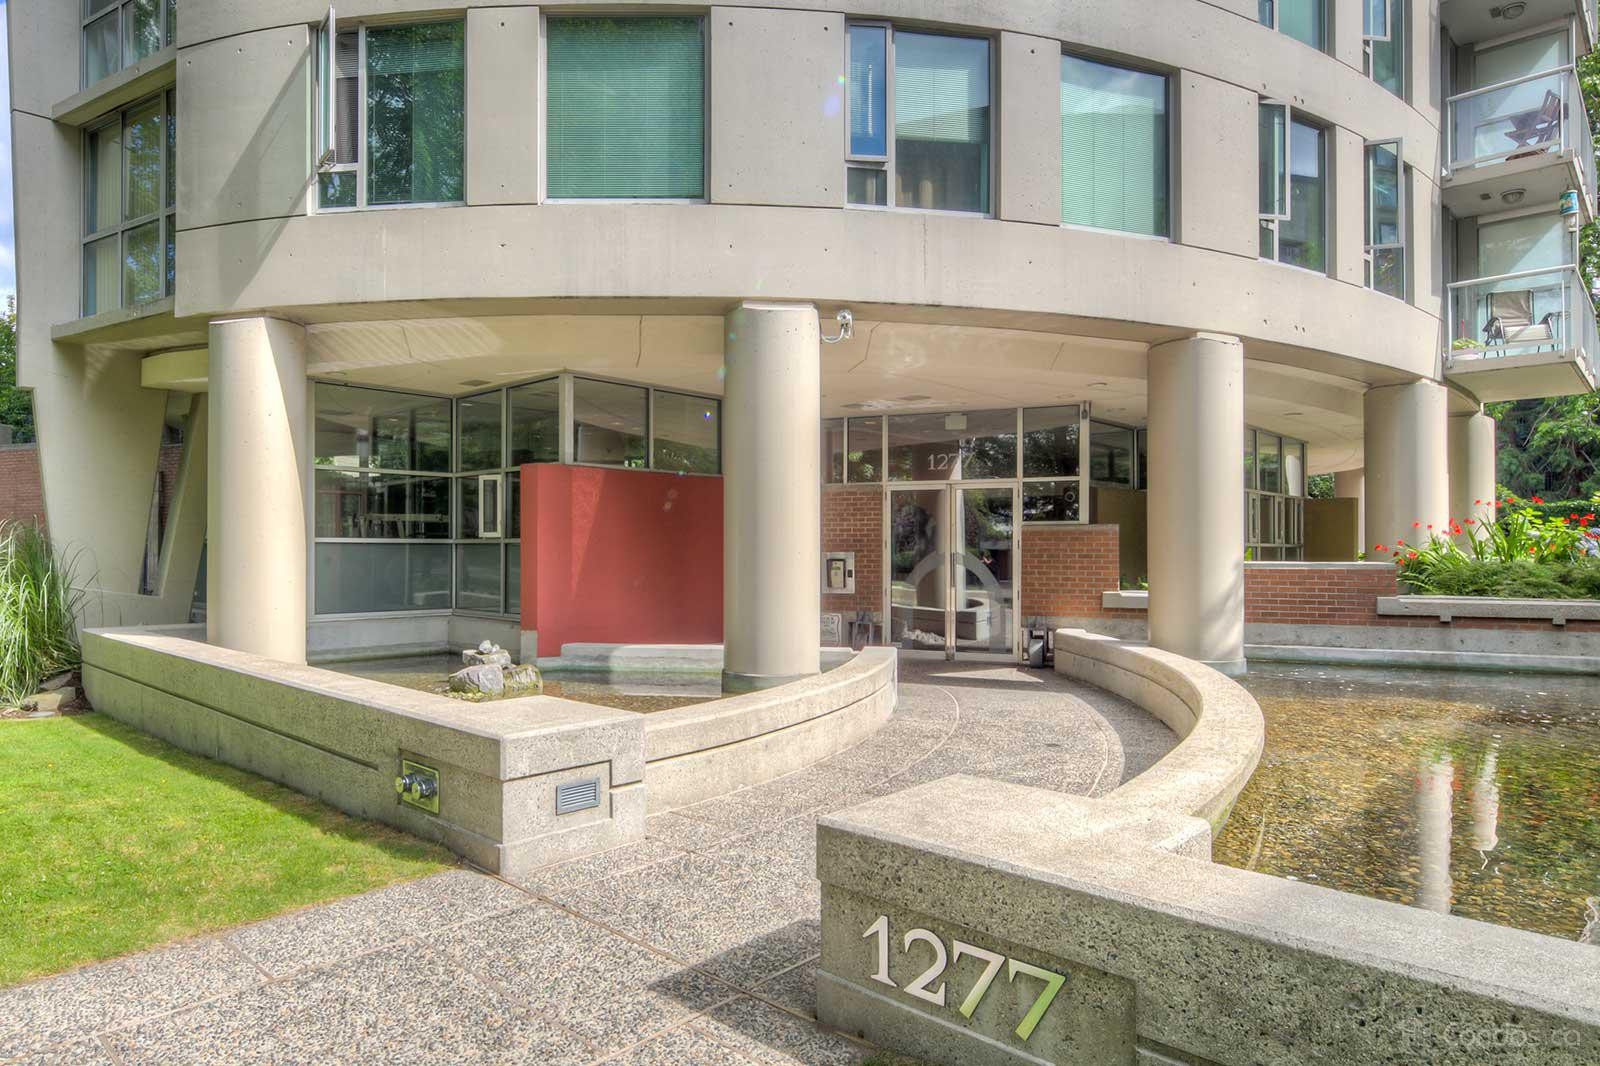 The Jetson at 1277 Nelson St, Vancouver 0